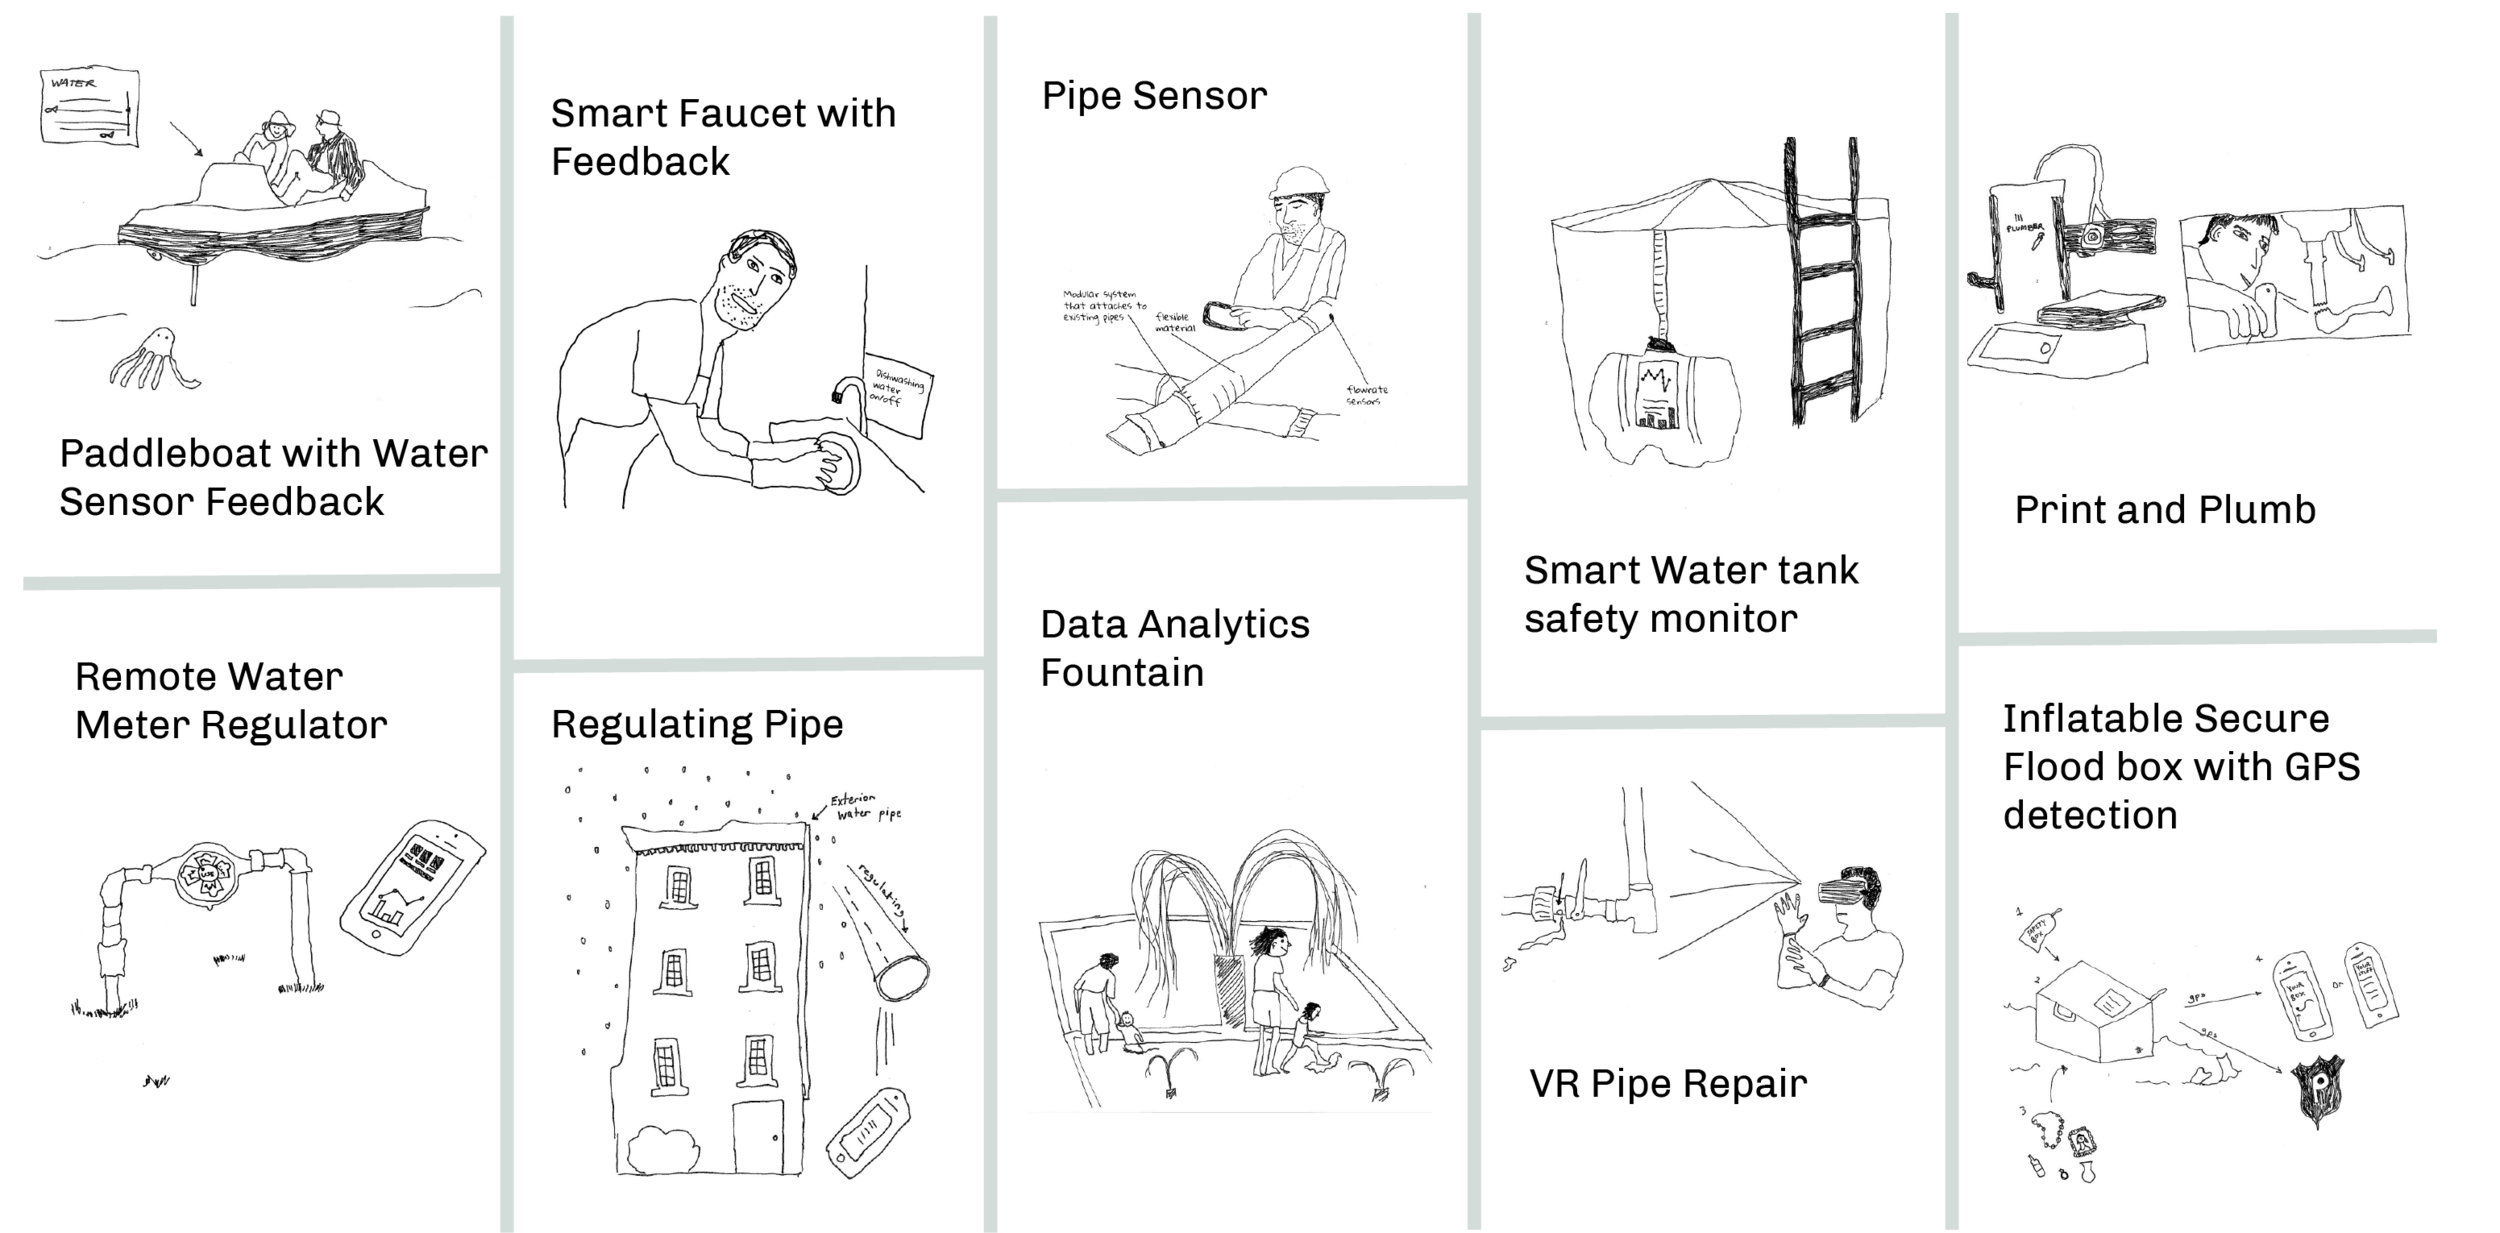 *This is a selection of the sketches I made from the suite of 32